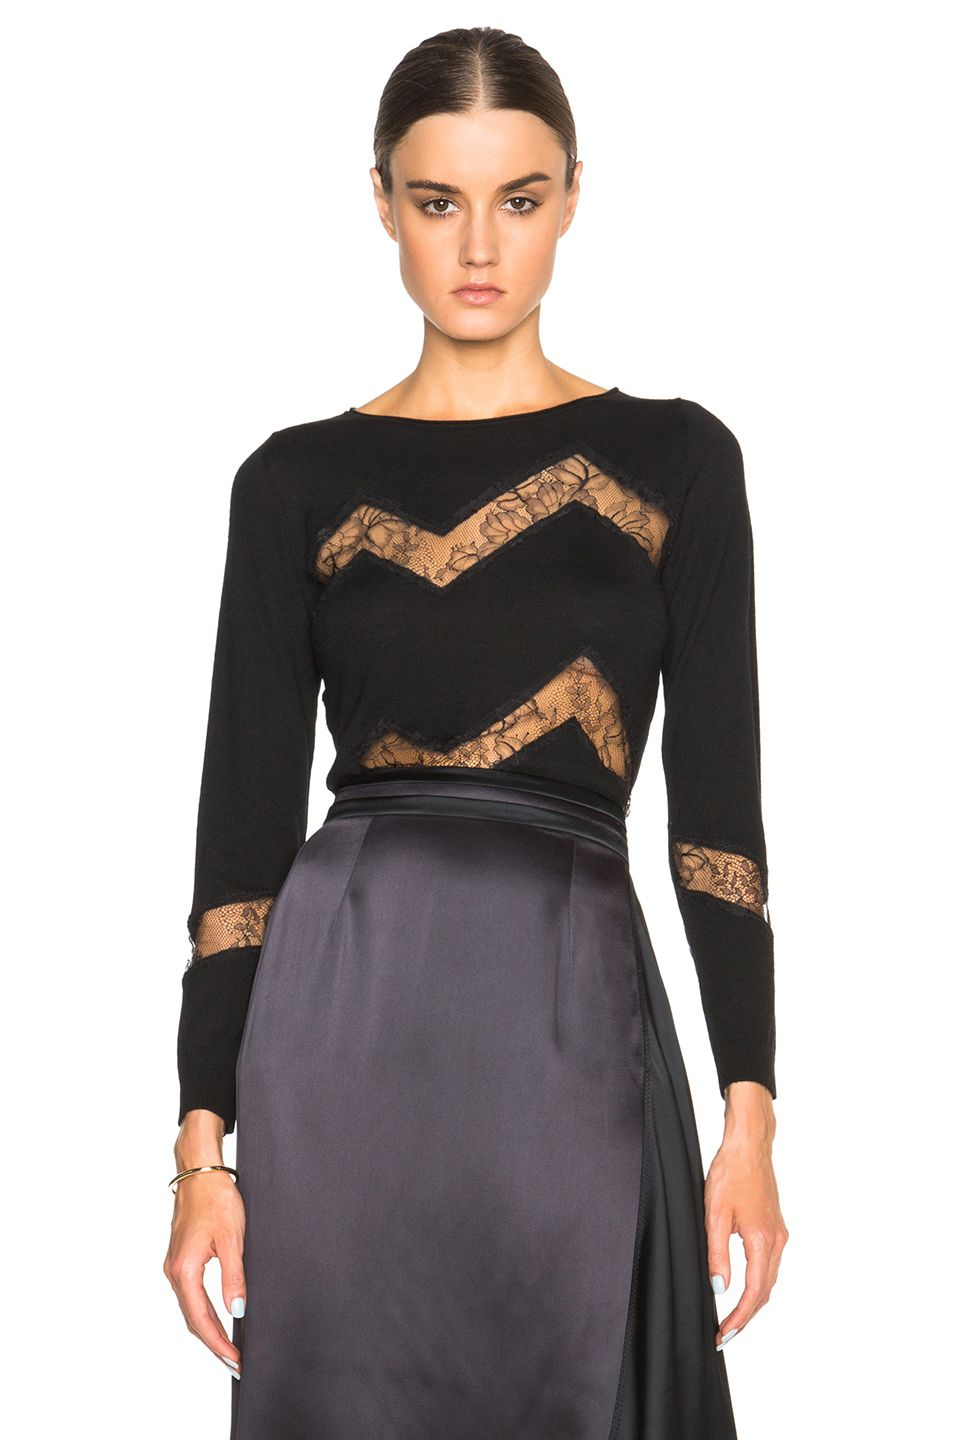 New Arrival Cheap Online Laced knit dress Nina Ricci Cheap Sale Enjoy Discount For Cheap New Online TLbiU4